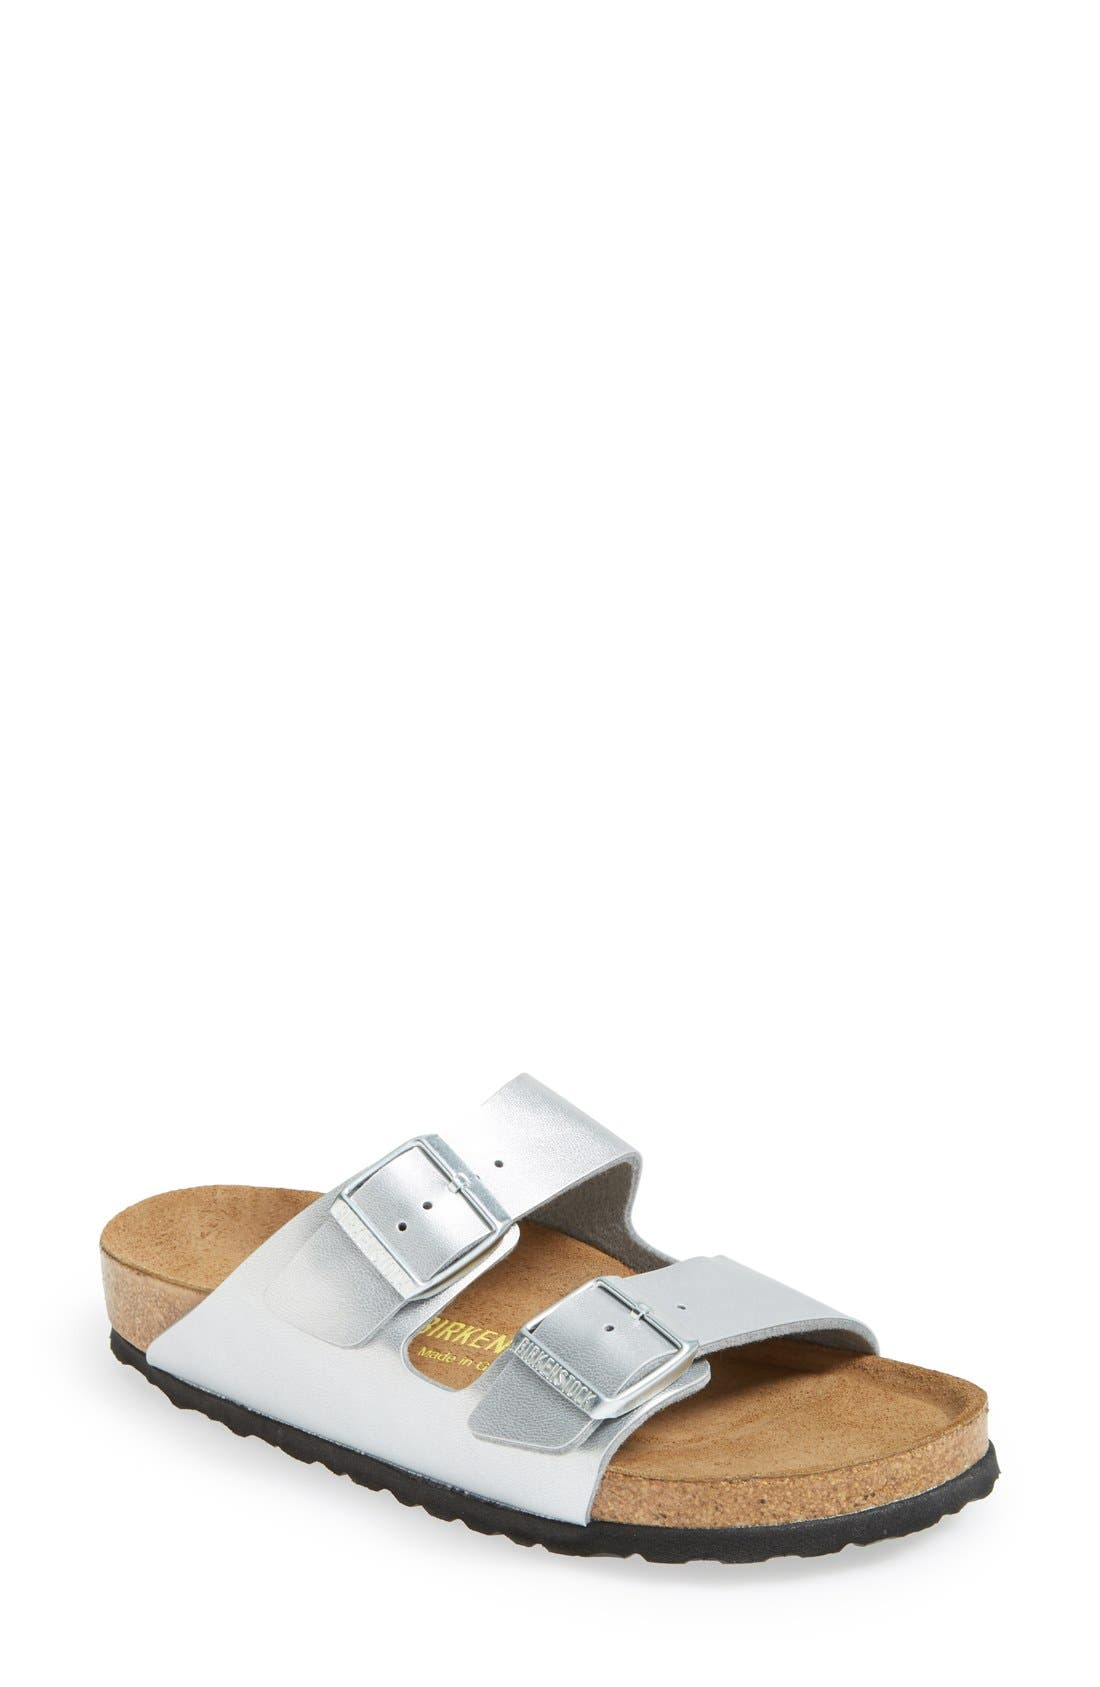 Main Image - Birkenstock 'Arizona Birko-Flor' Soft Footbed Sandal (Women)